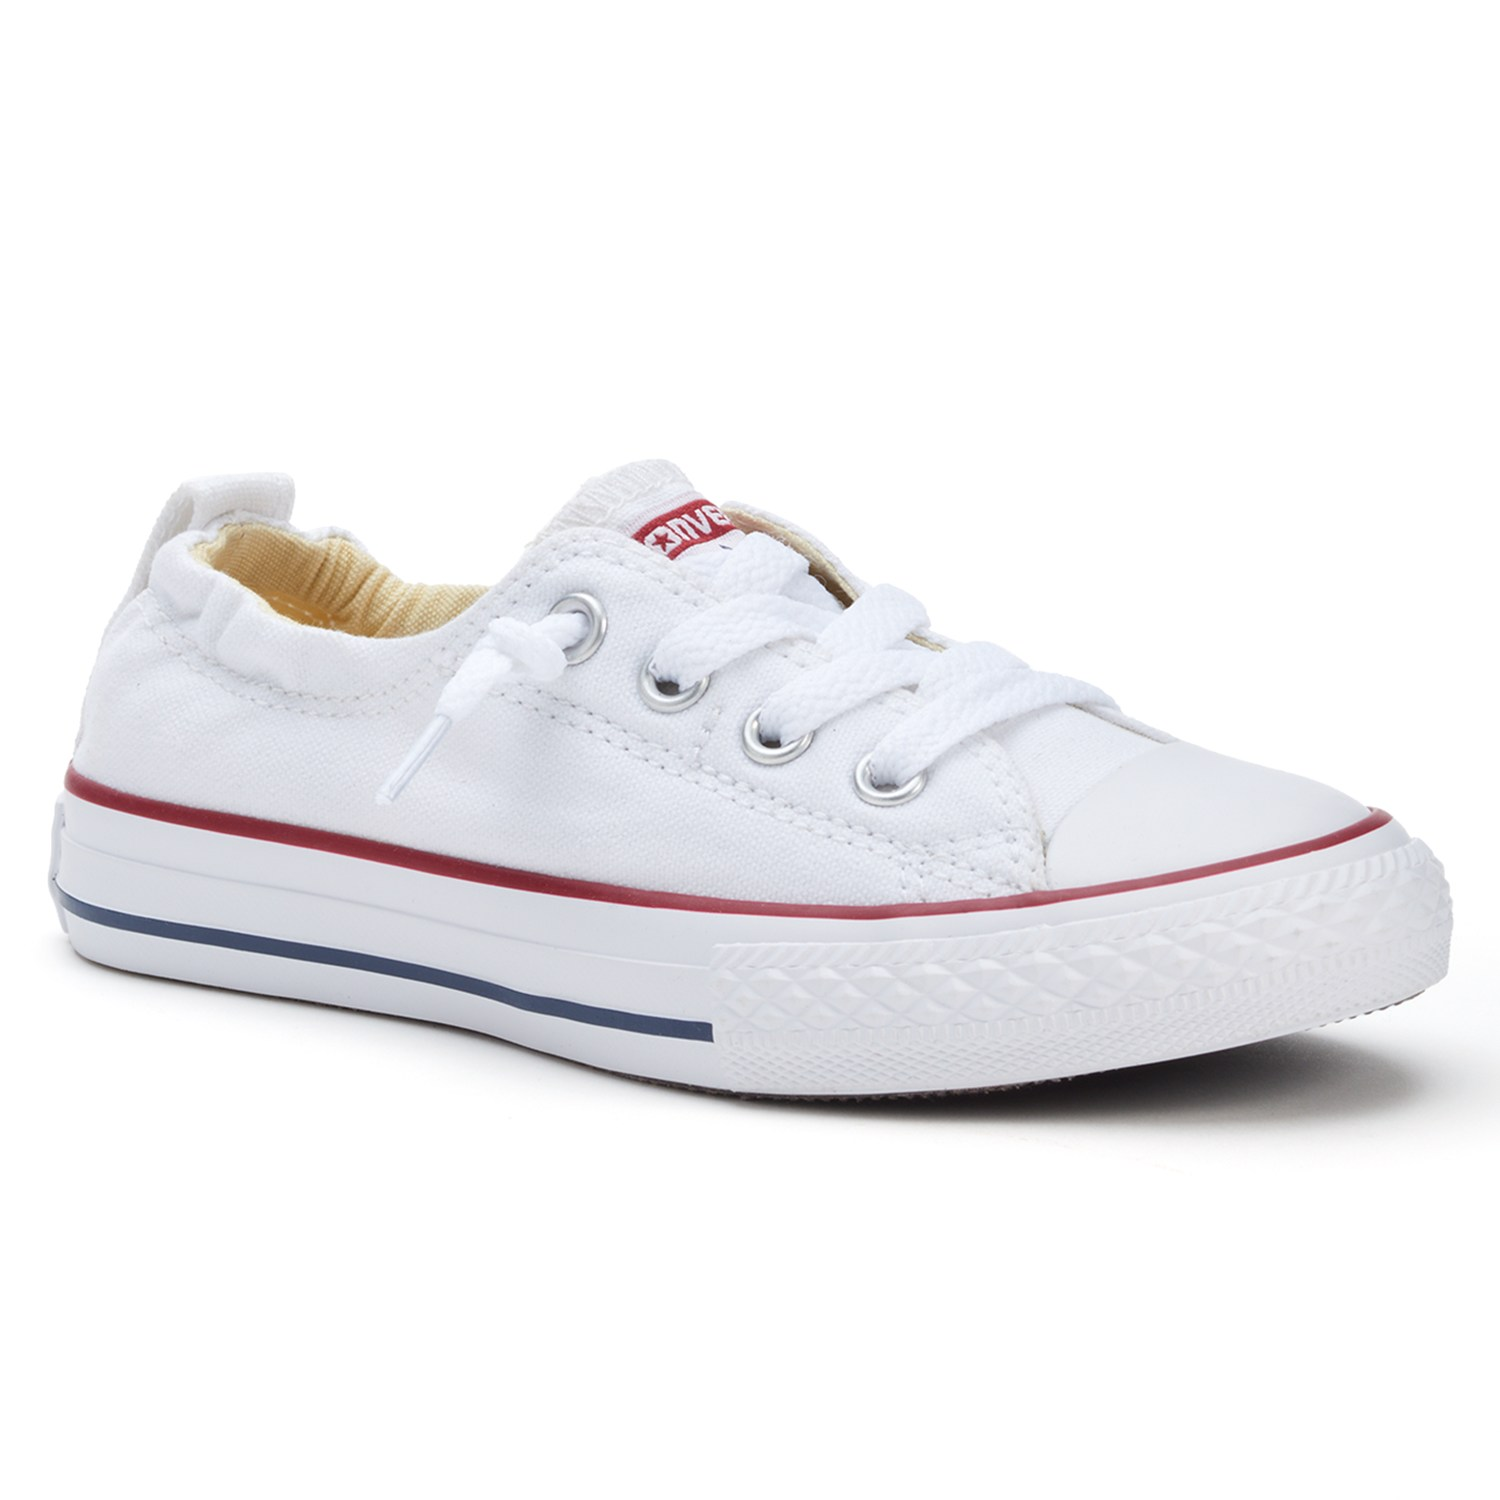 White converse kidu0027s converse all star shoreline slip-on sneakers. black white KDZBTCB